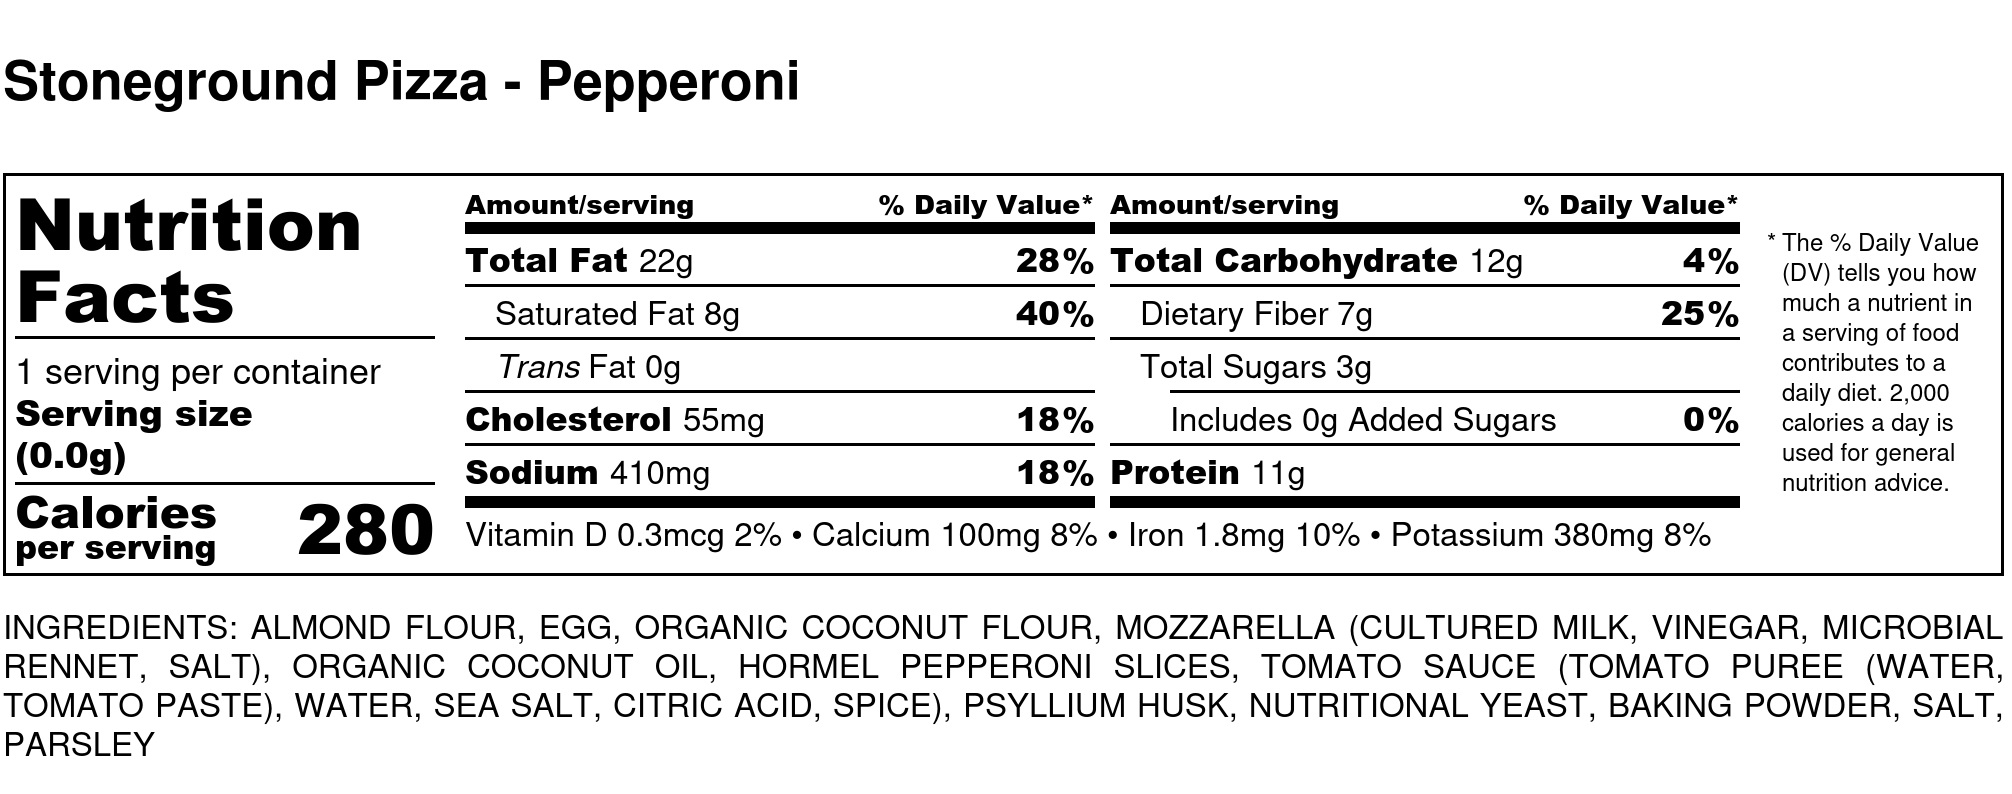 stoneground-pizza-pepperoni-nutrition-label-7-.jpg